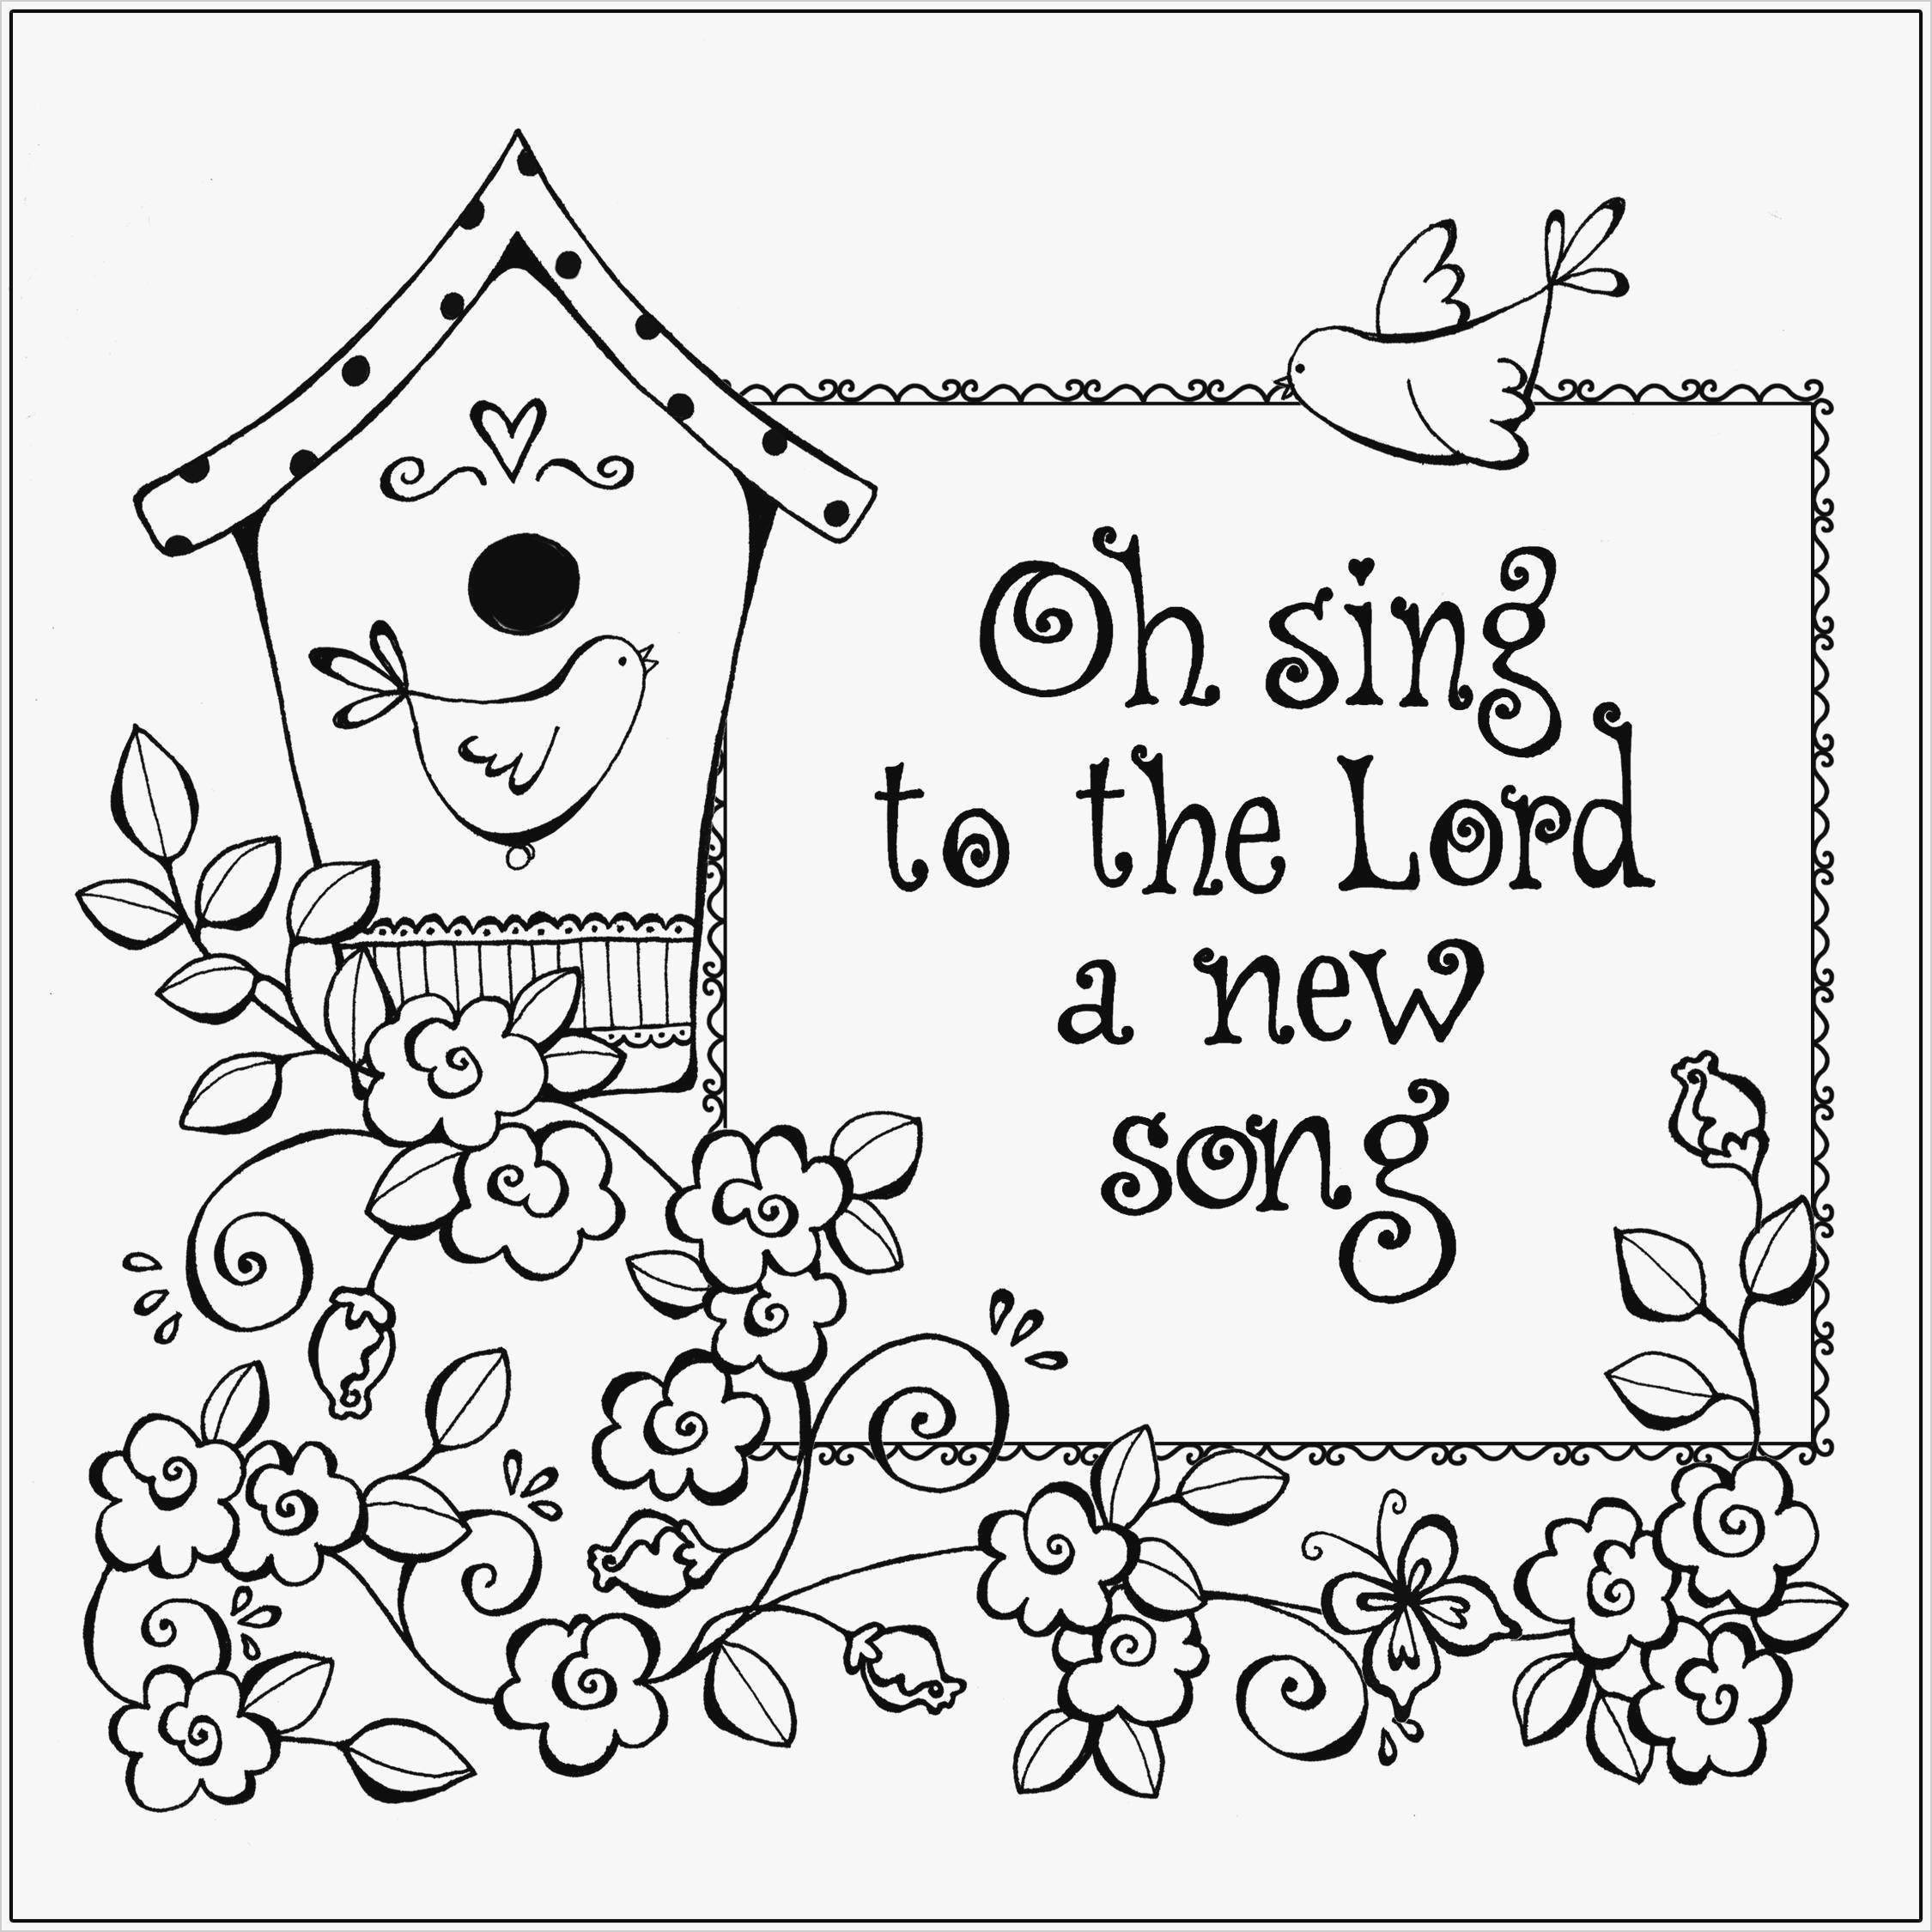 First Day Of School Coloring Pages Awesome Back To School Coloring Sheets In 2020 Sunday School Coloring Pages Bible Coloring Pages Summer Coloring Pages